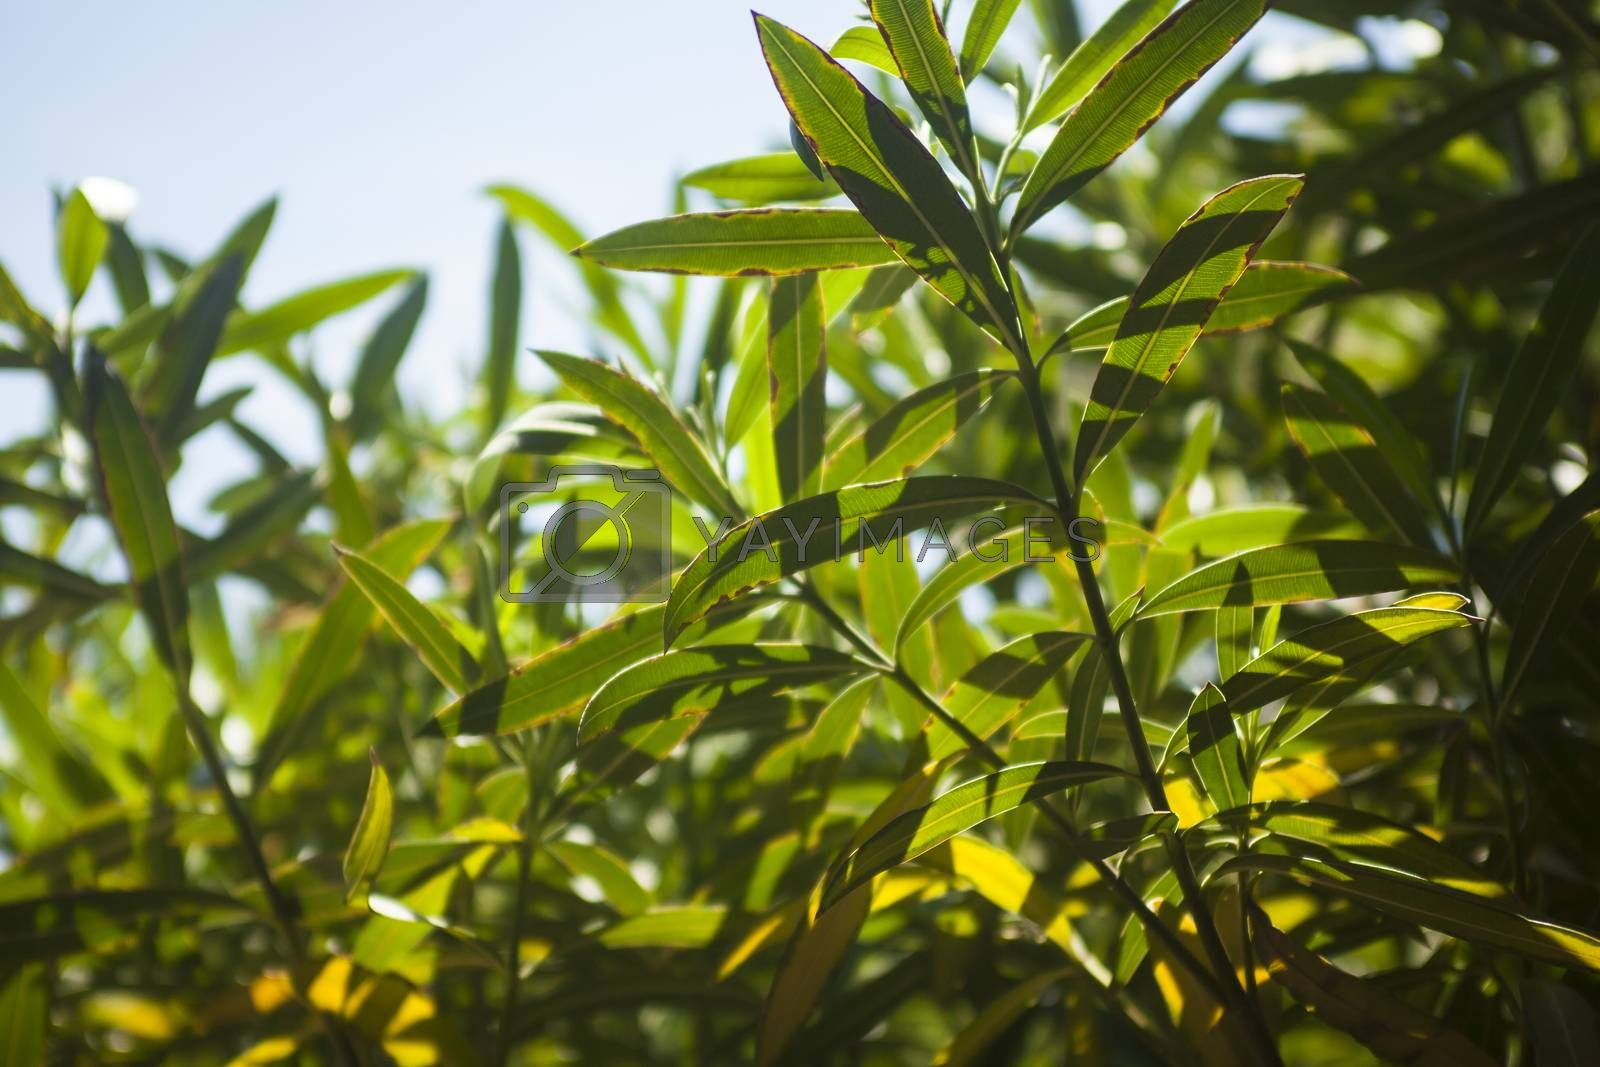 Oleander leaves in the sun #17 by Filippo Carlot